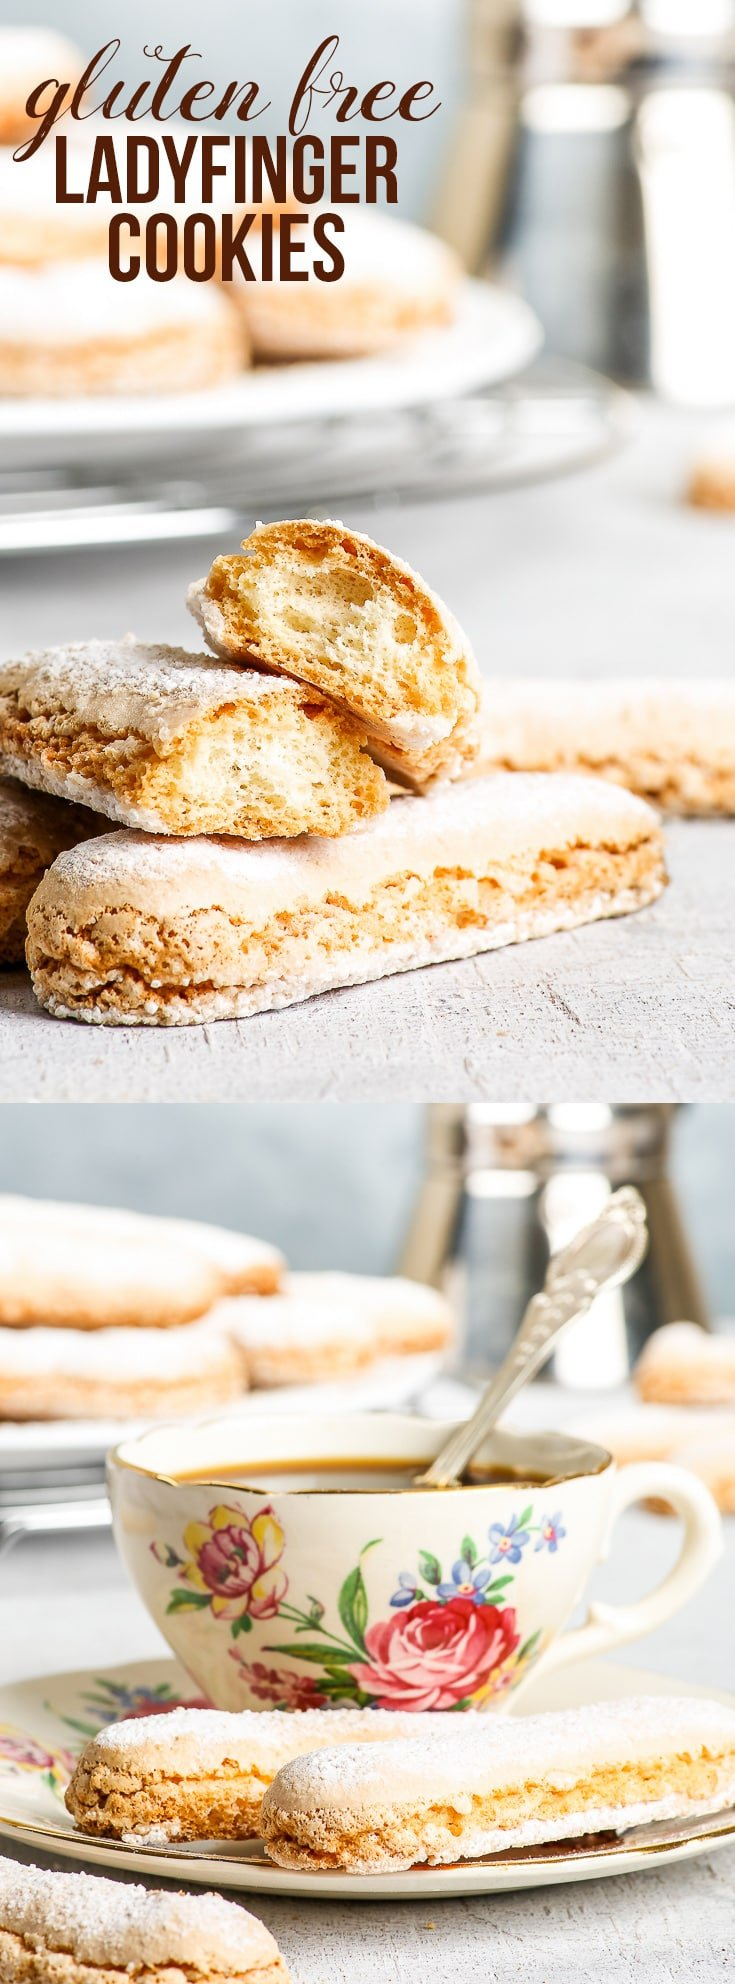 The Perfect Gluten Free Ladyfingers {gluten, dairy, nut & soy free} - Perfect for dunking into a cup of coffee, or for making gluten free tiramisu, these gluten free sponge fingers are the cookie to have in your repertoire. Easy to make and equal (or even better) in all respects to the store-bought version! Gluten free cookies. Gluten free biscuits. Gluten free dessert. Dairy free cookies. Dairy free dessert. Gluten free cookie recipes. #glutenfree #dairyfree #cookies #tiramisu #dessert #recipe